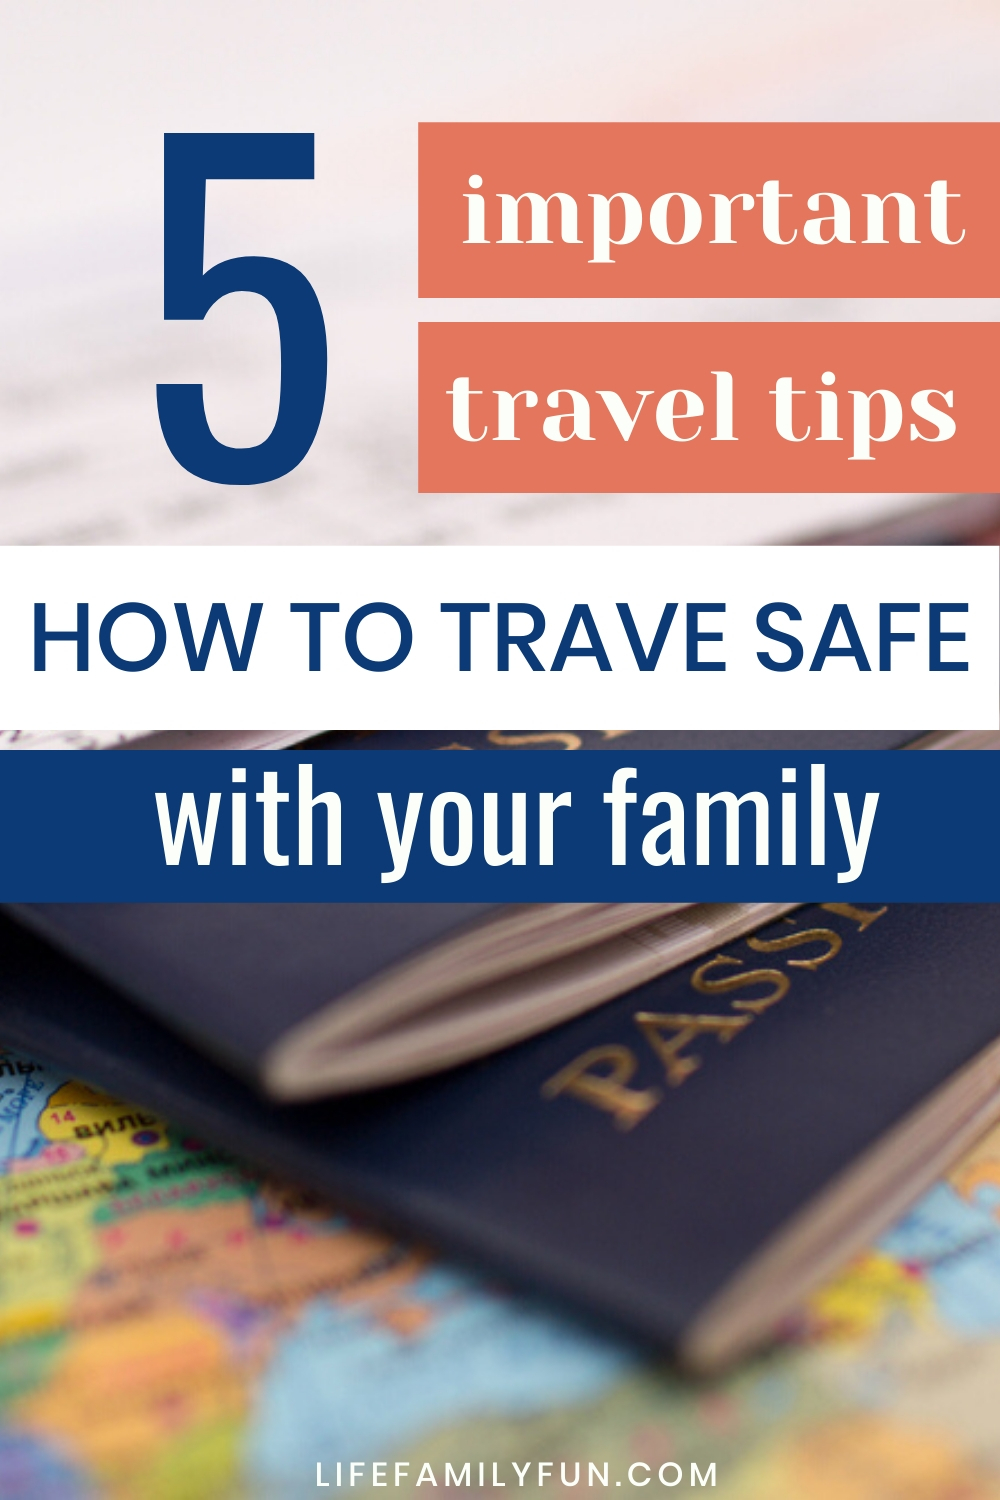 Travel Safe, Travel Tips, Traveling With Family